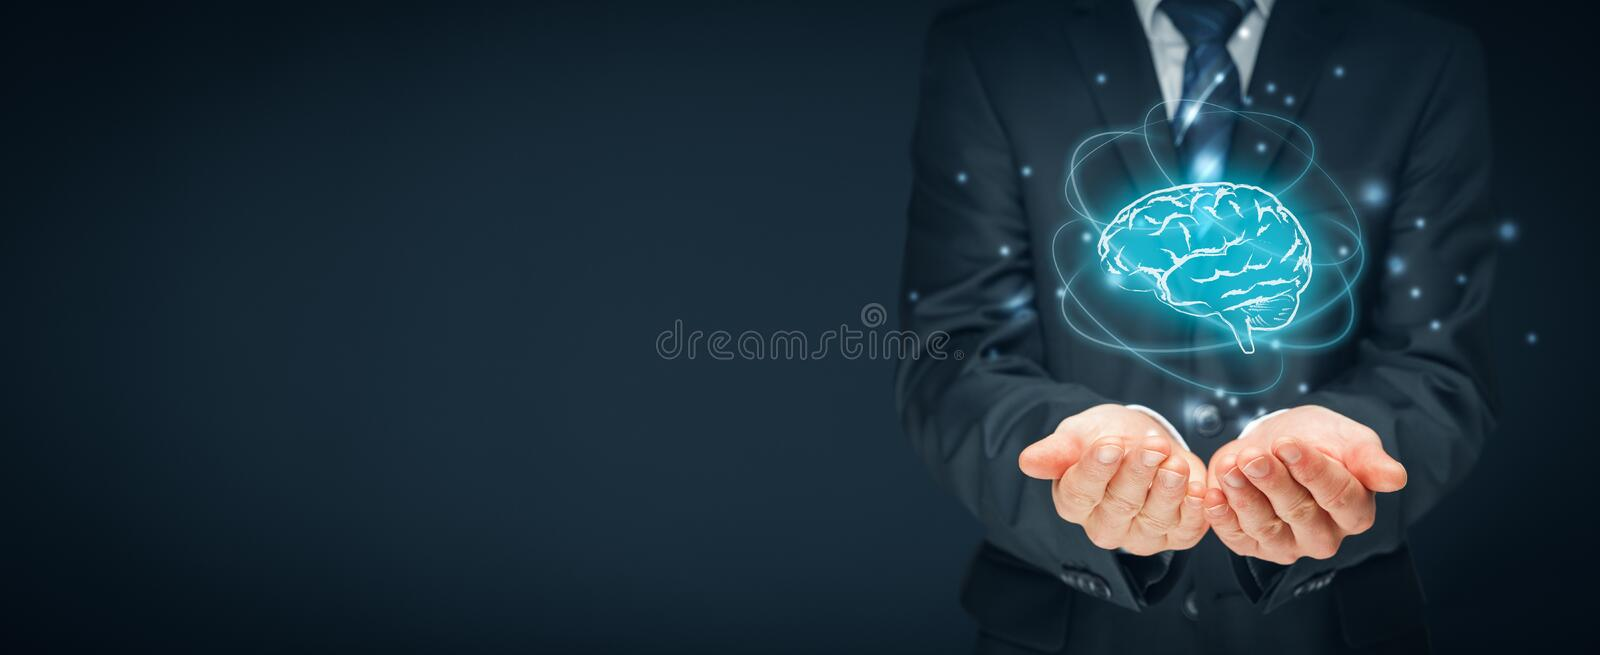 Artificial intelligence and creativity. Artificial intelligence AI, machine deep learning, creativity, headhunter, innovation and intellectual property rights royalty free stock images